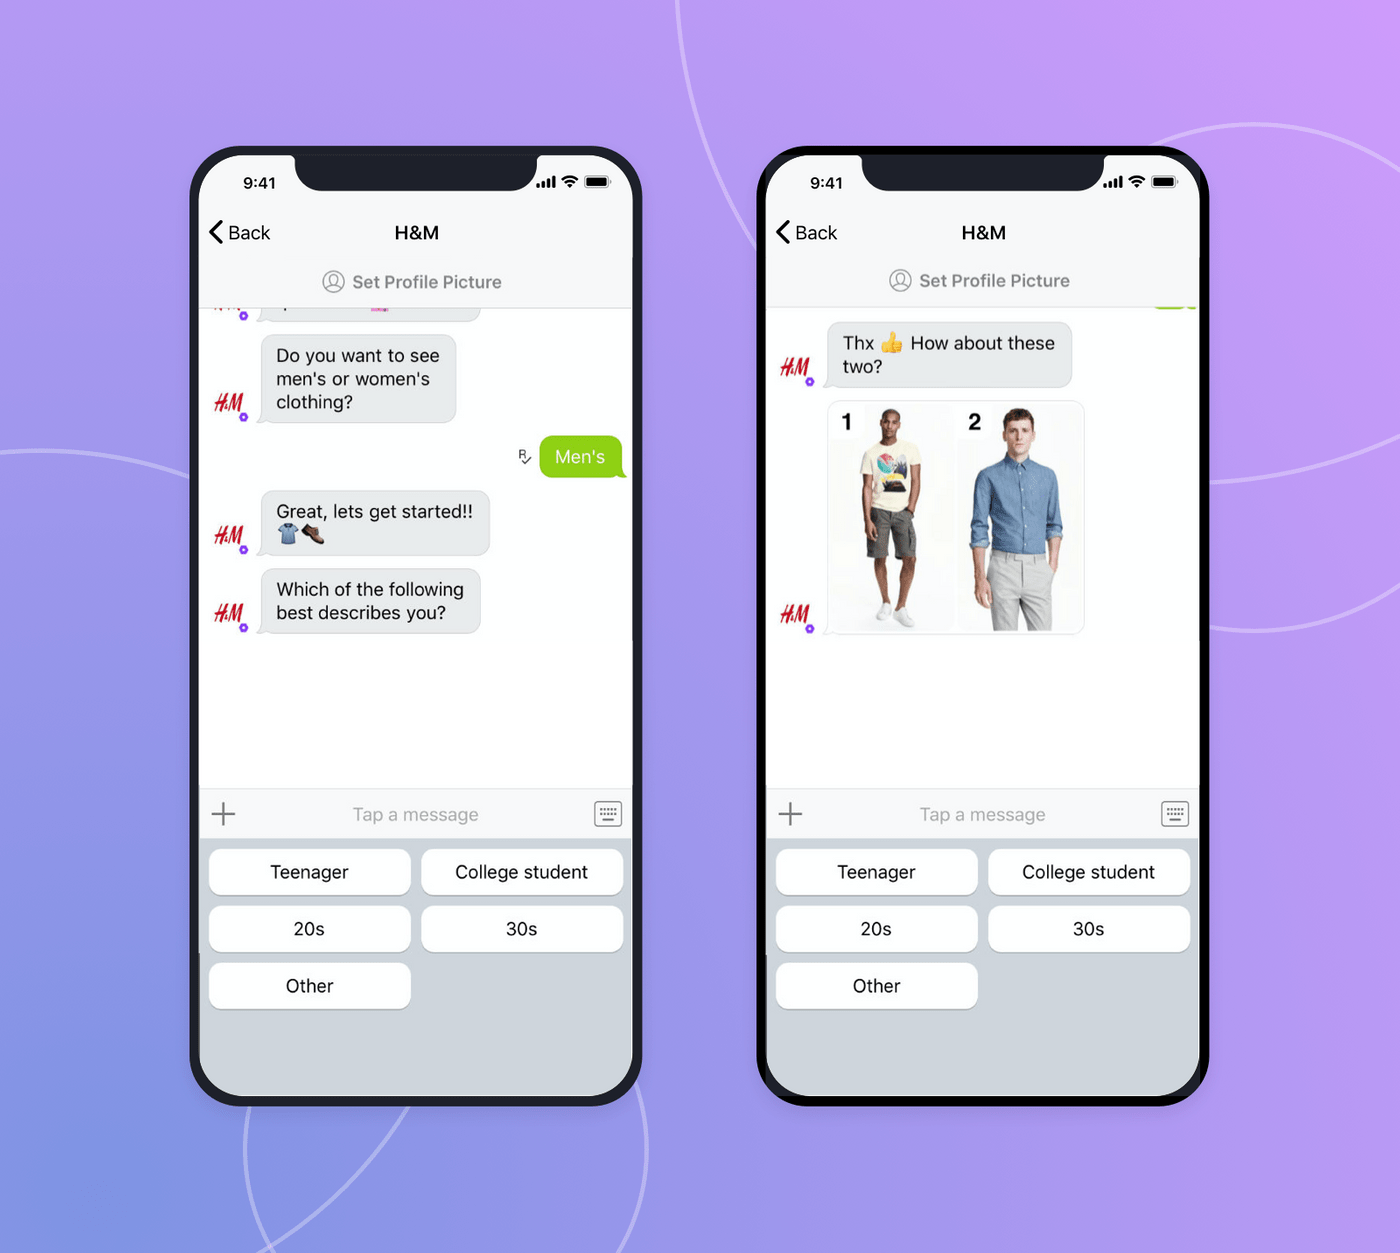 Chatbots in business: H&M use case